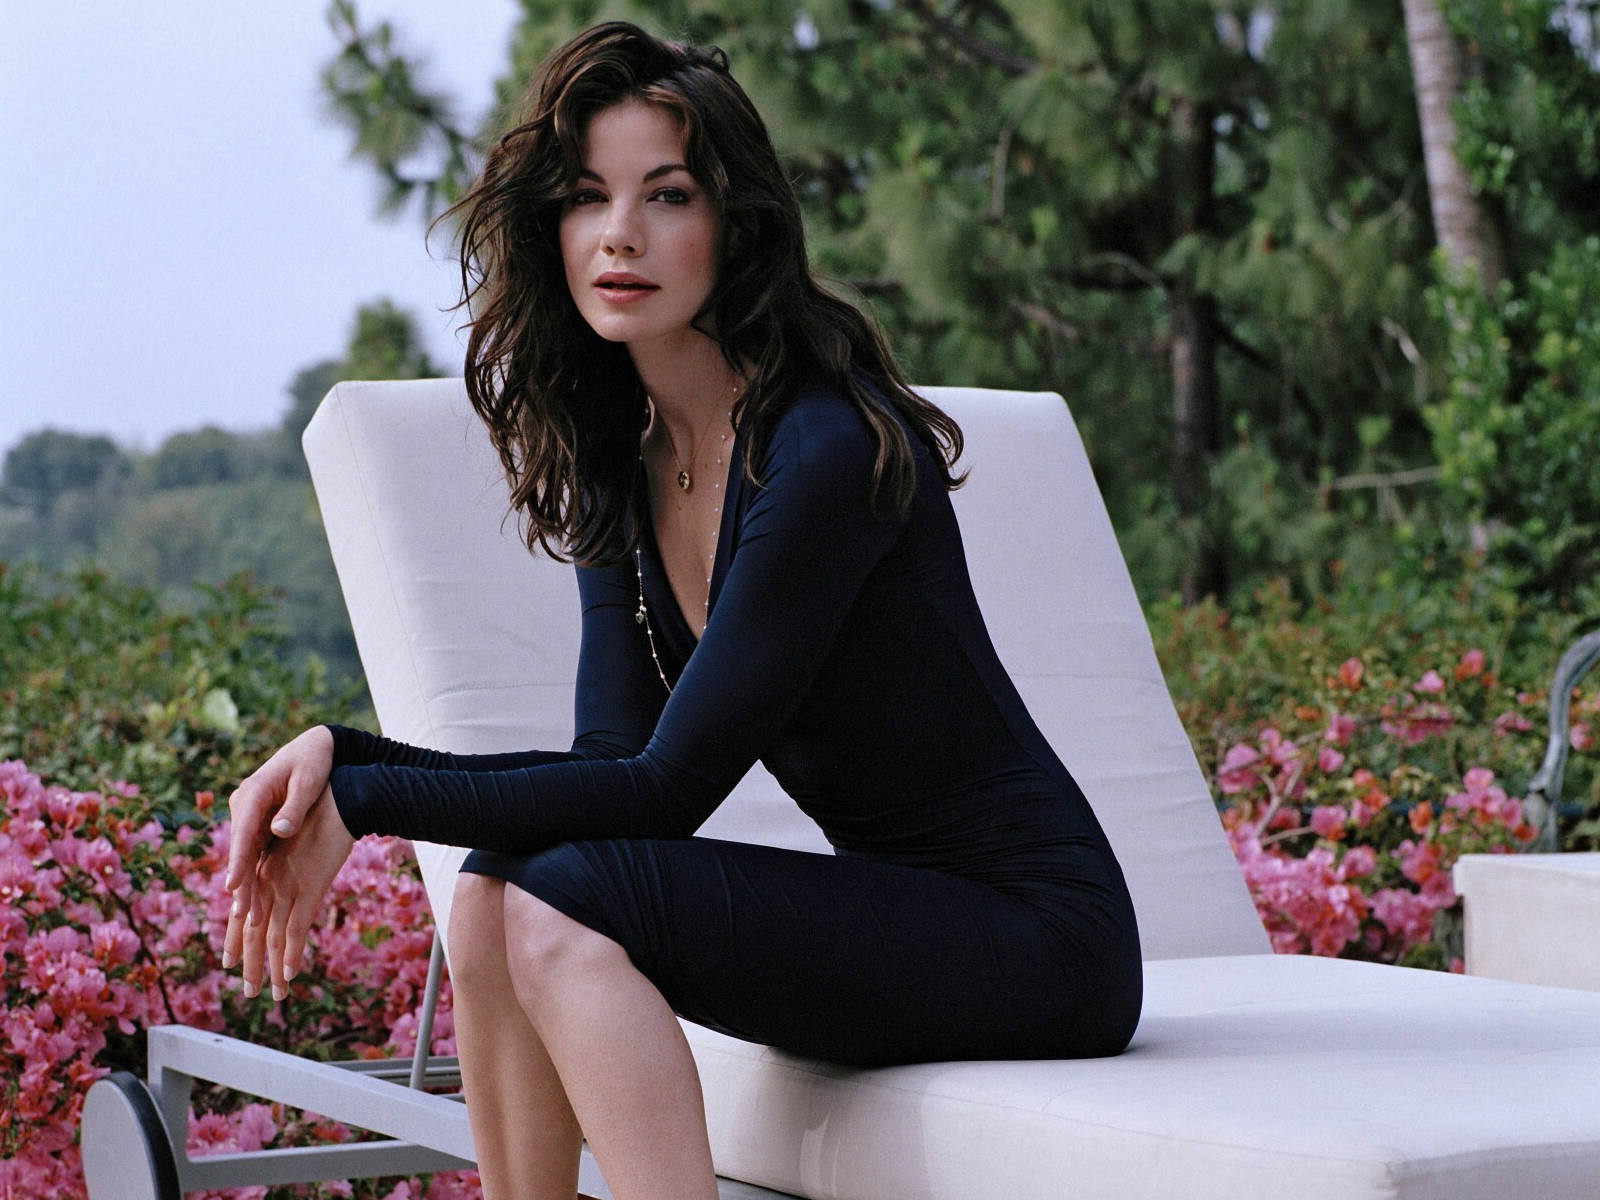 Michelle Monaghan Beautiful Sexy Female